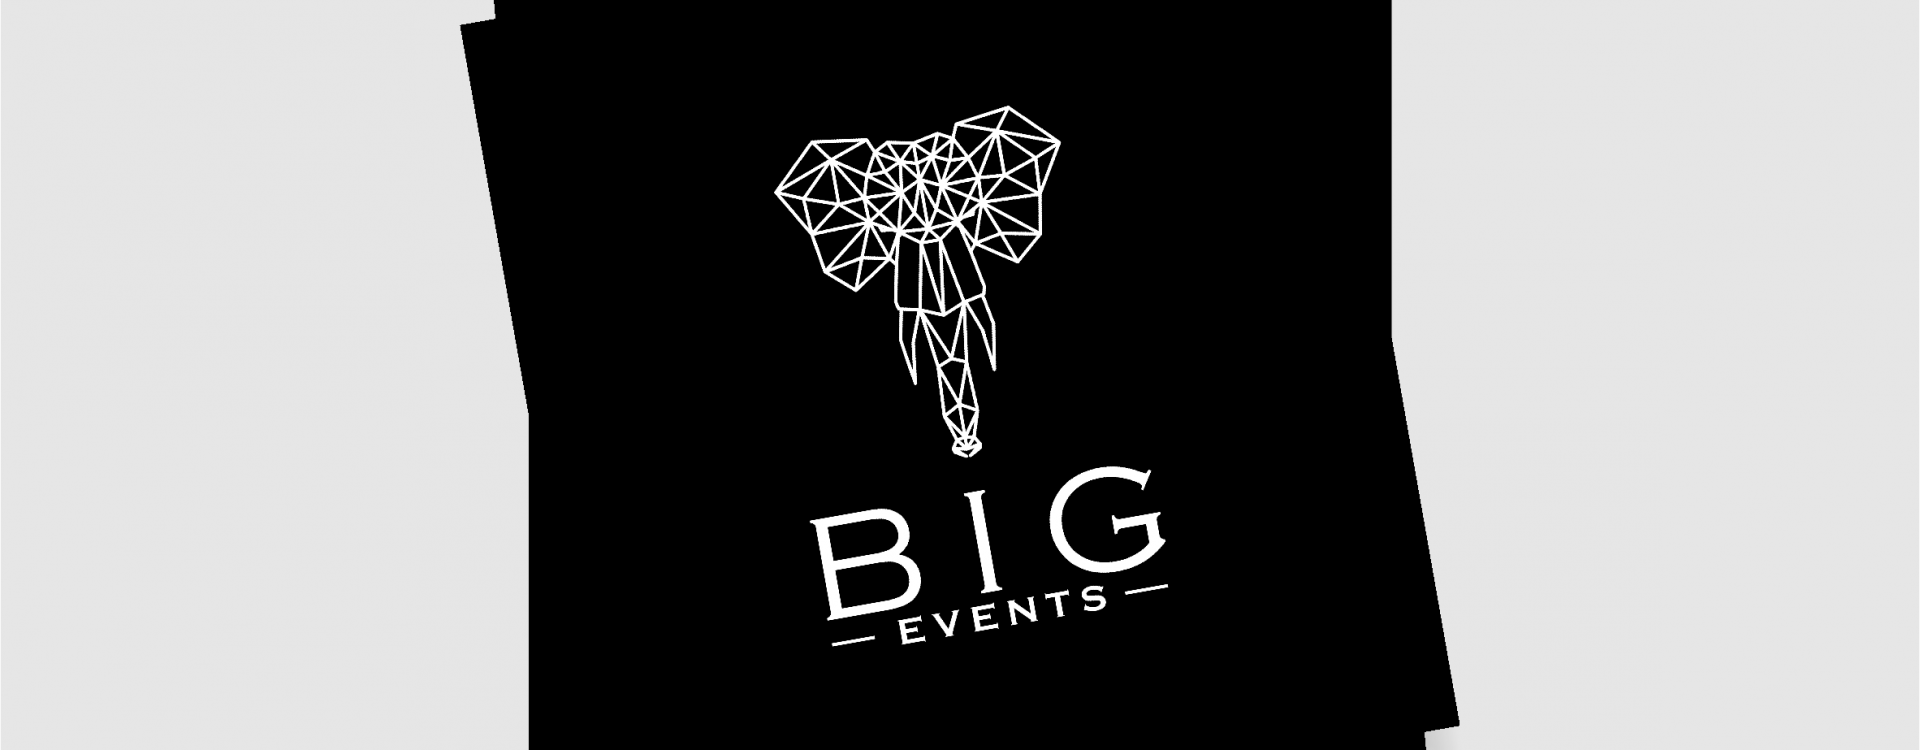 BIG EVENTS